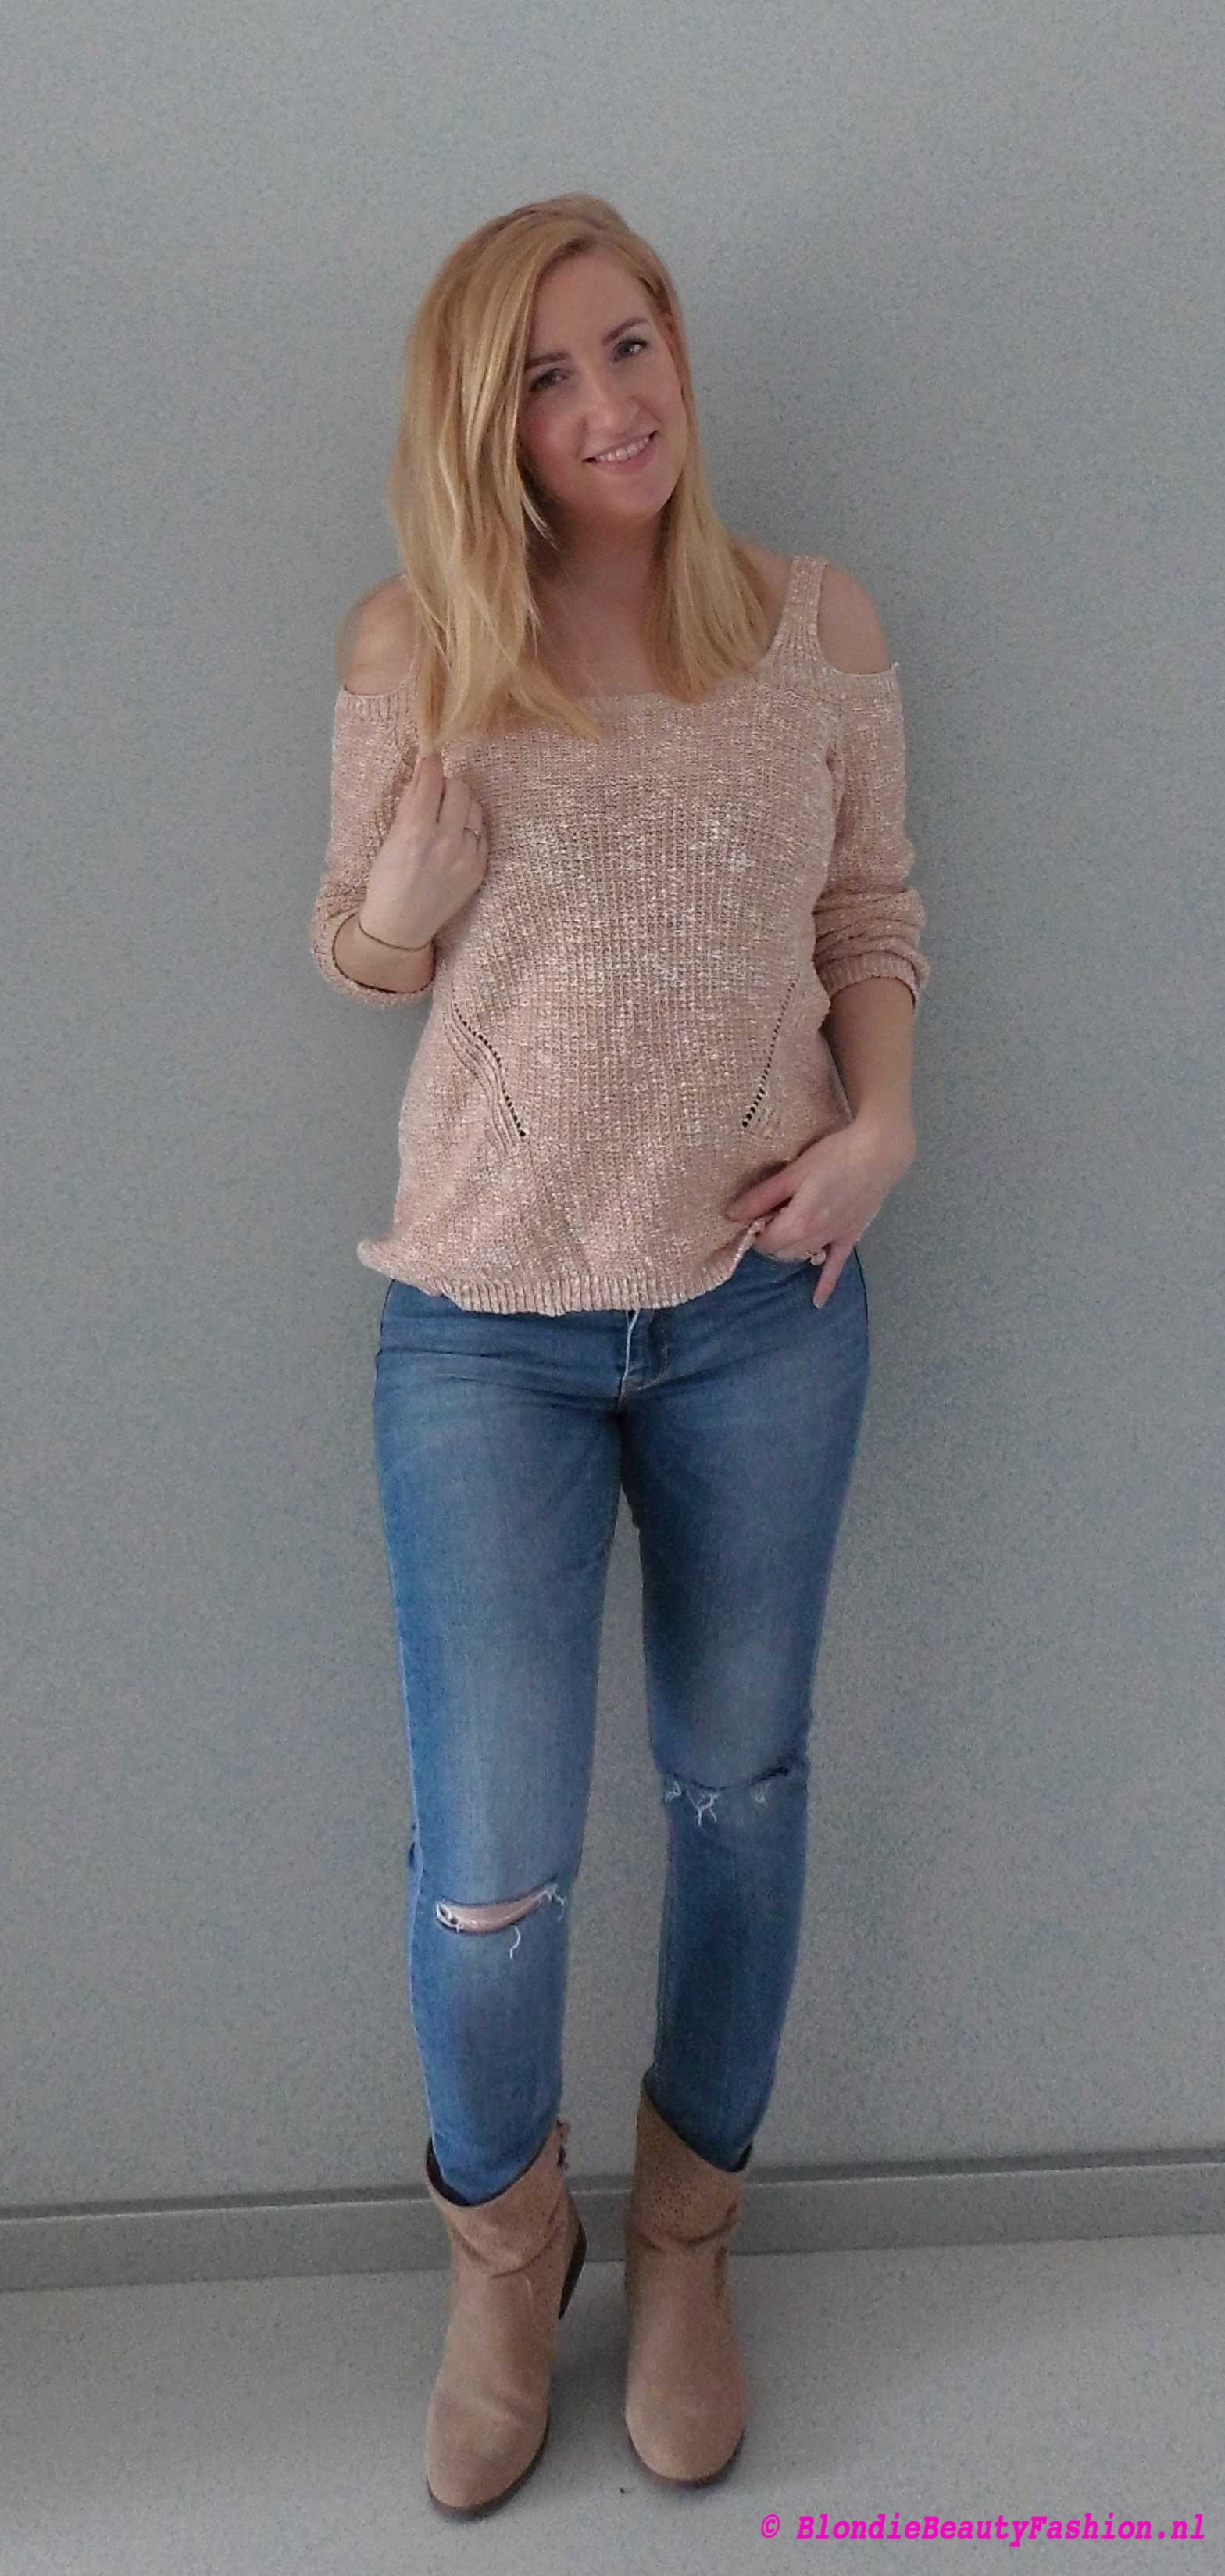 OOTD-lente-spring-outfit-style-casual-blote-schouders-trui-ripped-jeans-booties-boots-primark-stradivarius-6